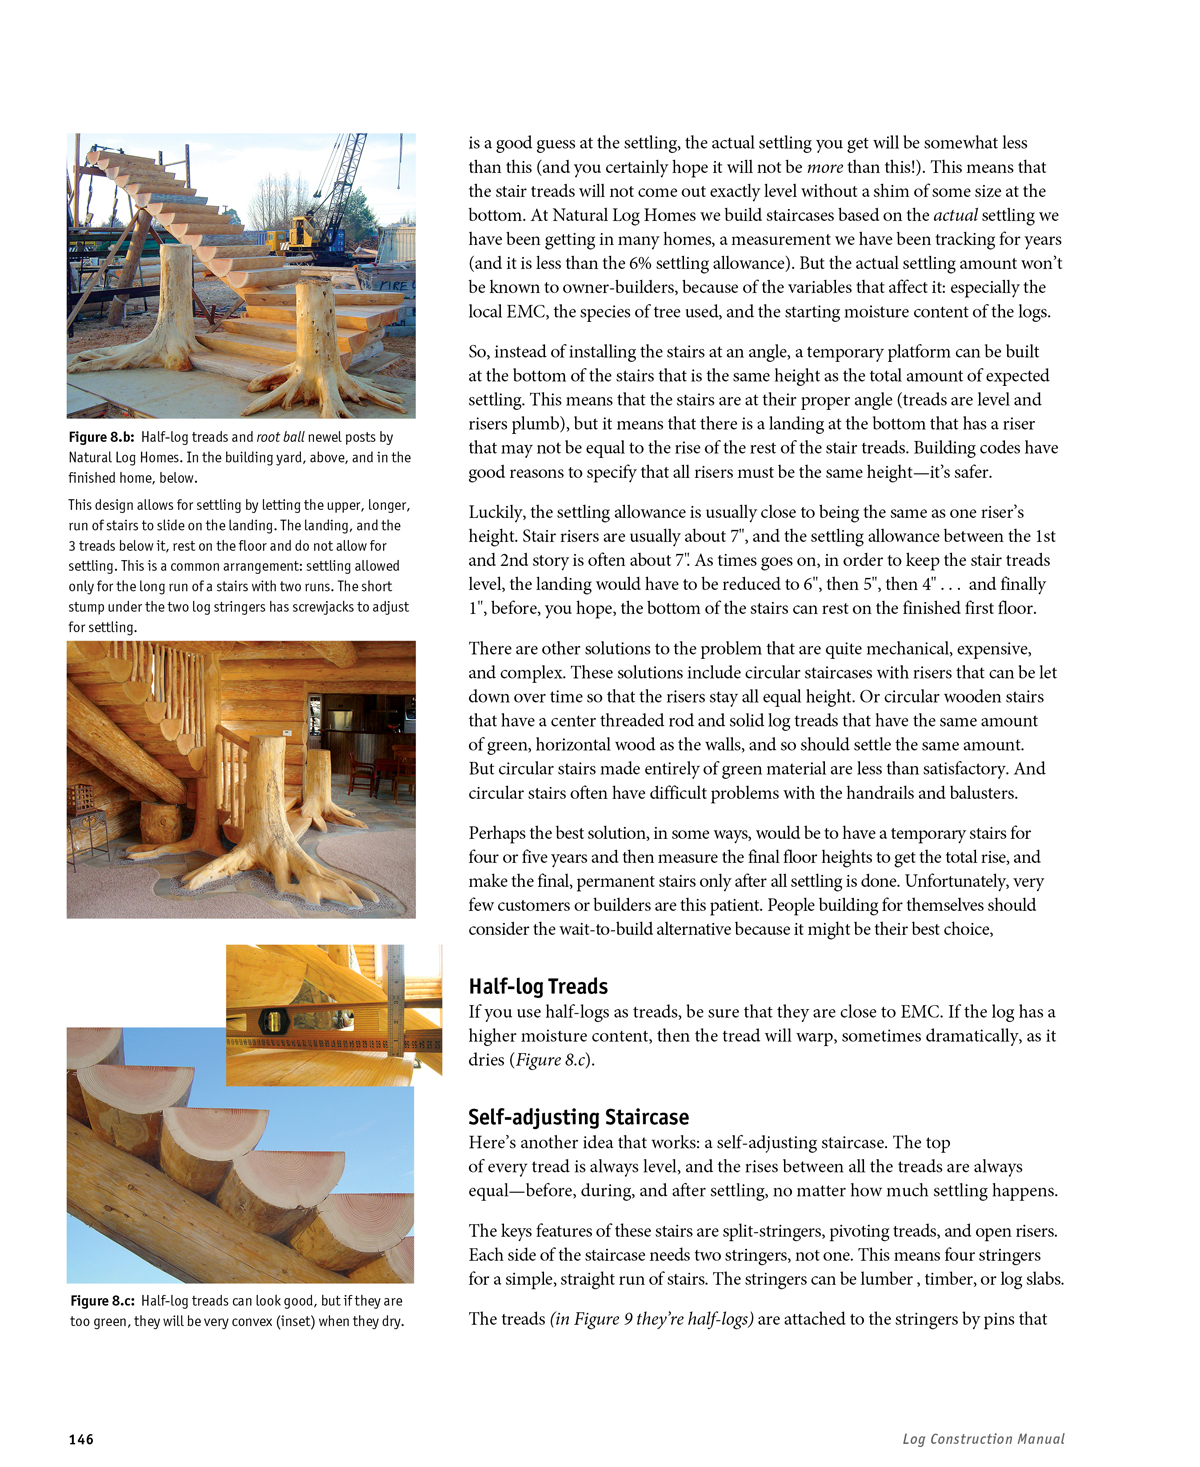 Sample pages log construction manual for Log construction